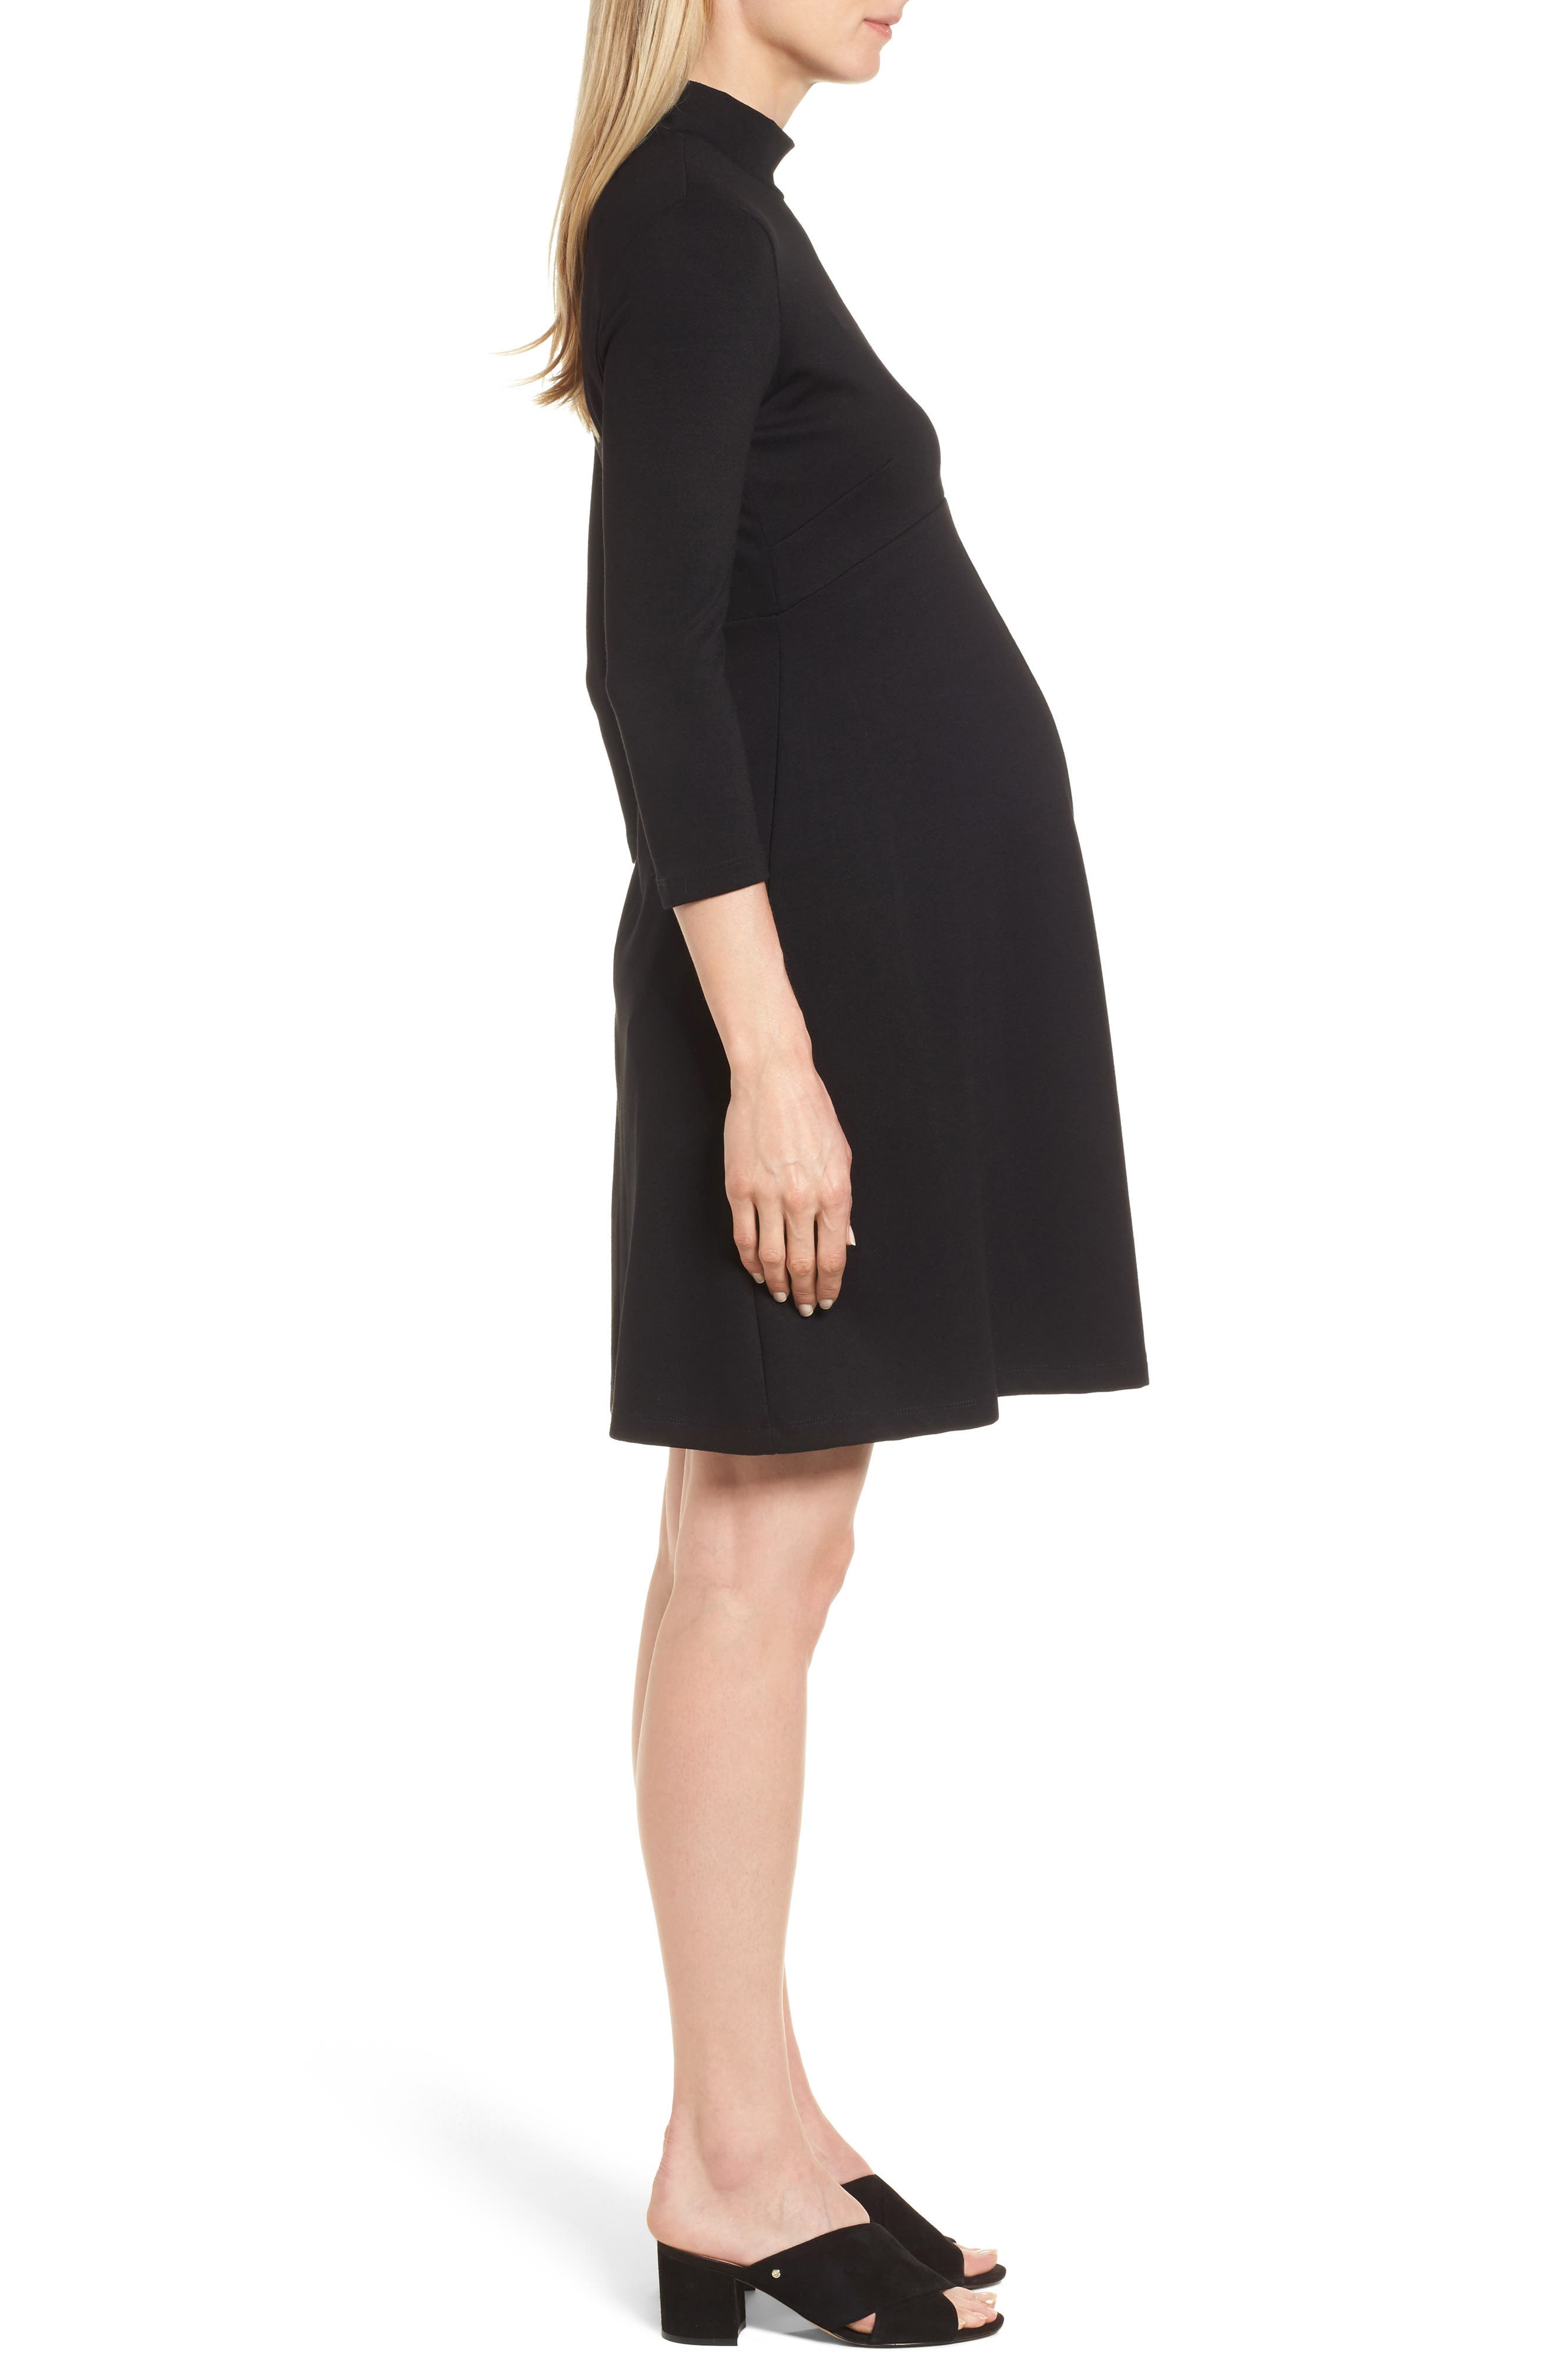 Kennett Maternity Dress,                             Alternate thumbnail 3, color,                             001